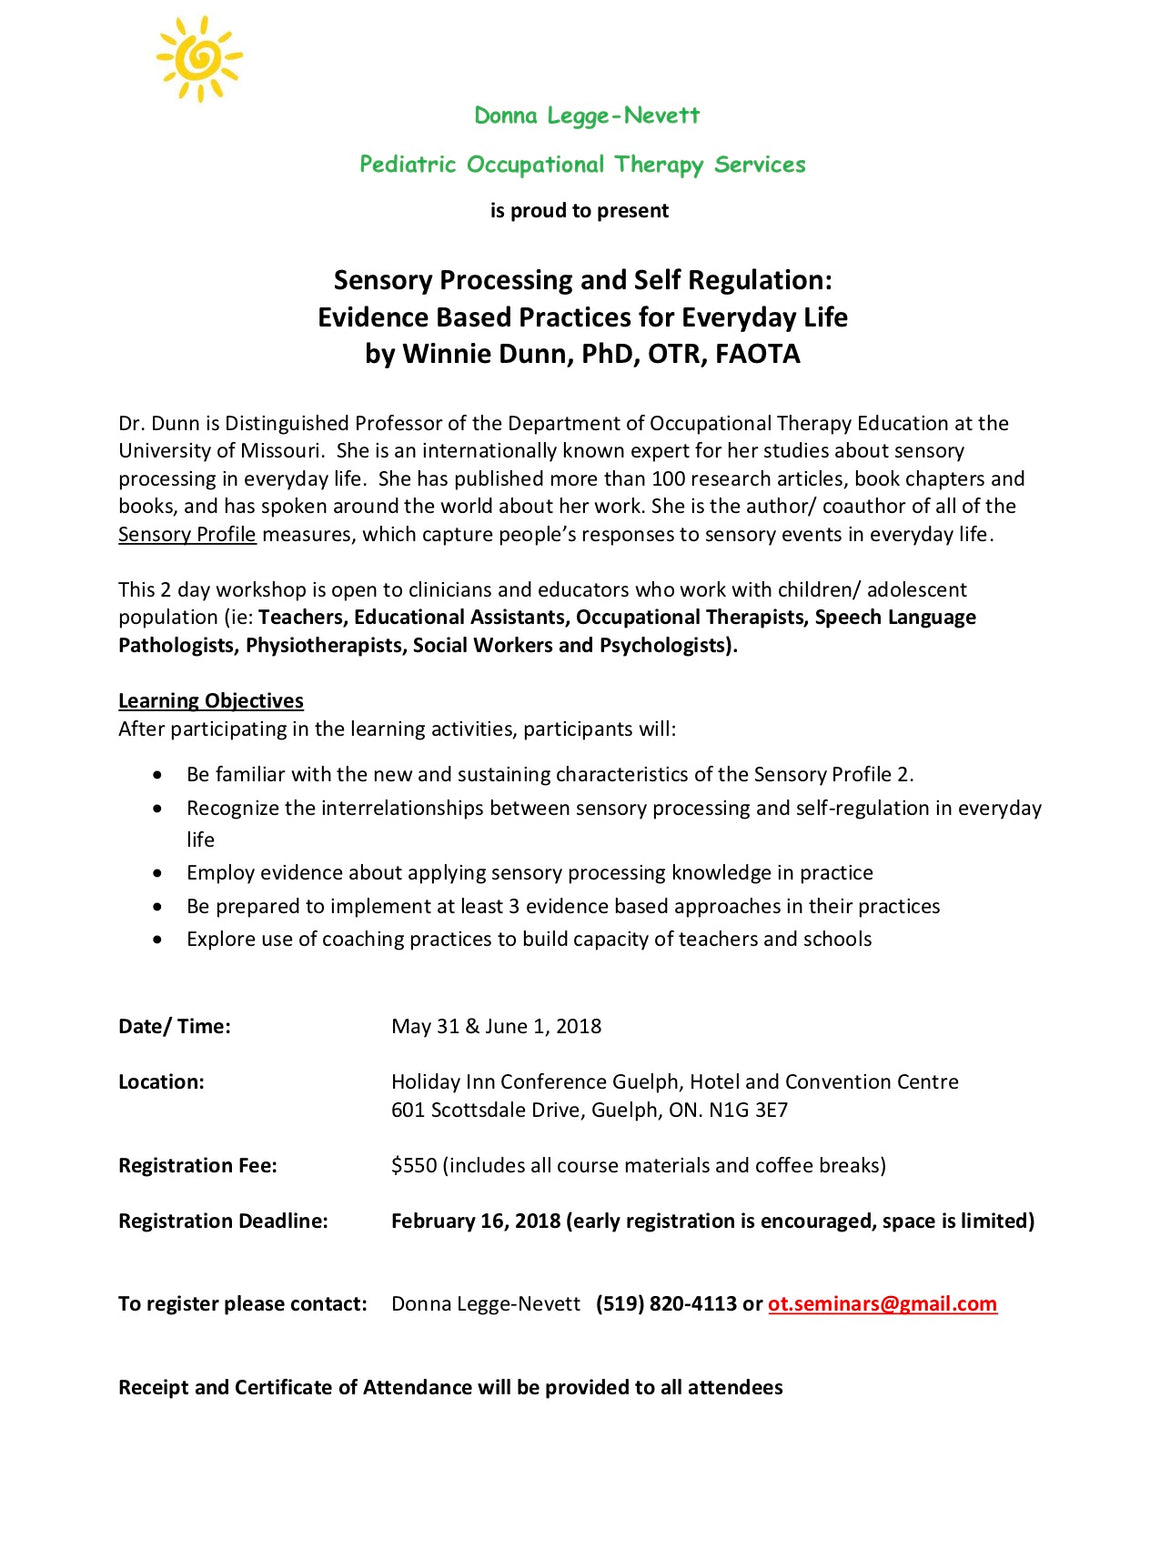 Sensory Processing and Self Regulation by Winnie Dunn  May 31 & June 1, 2018